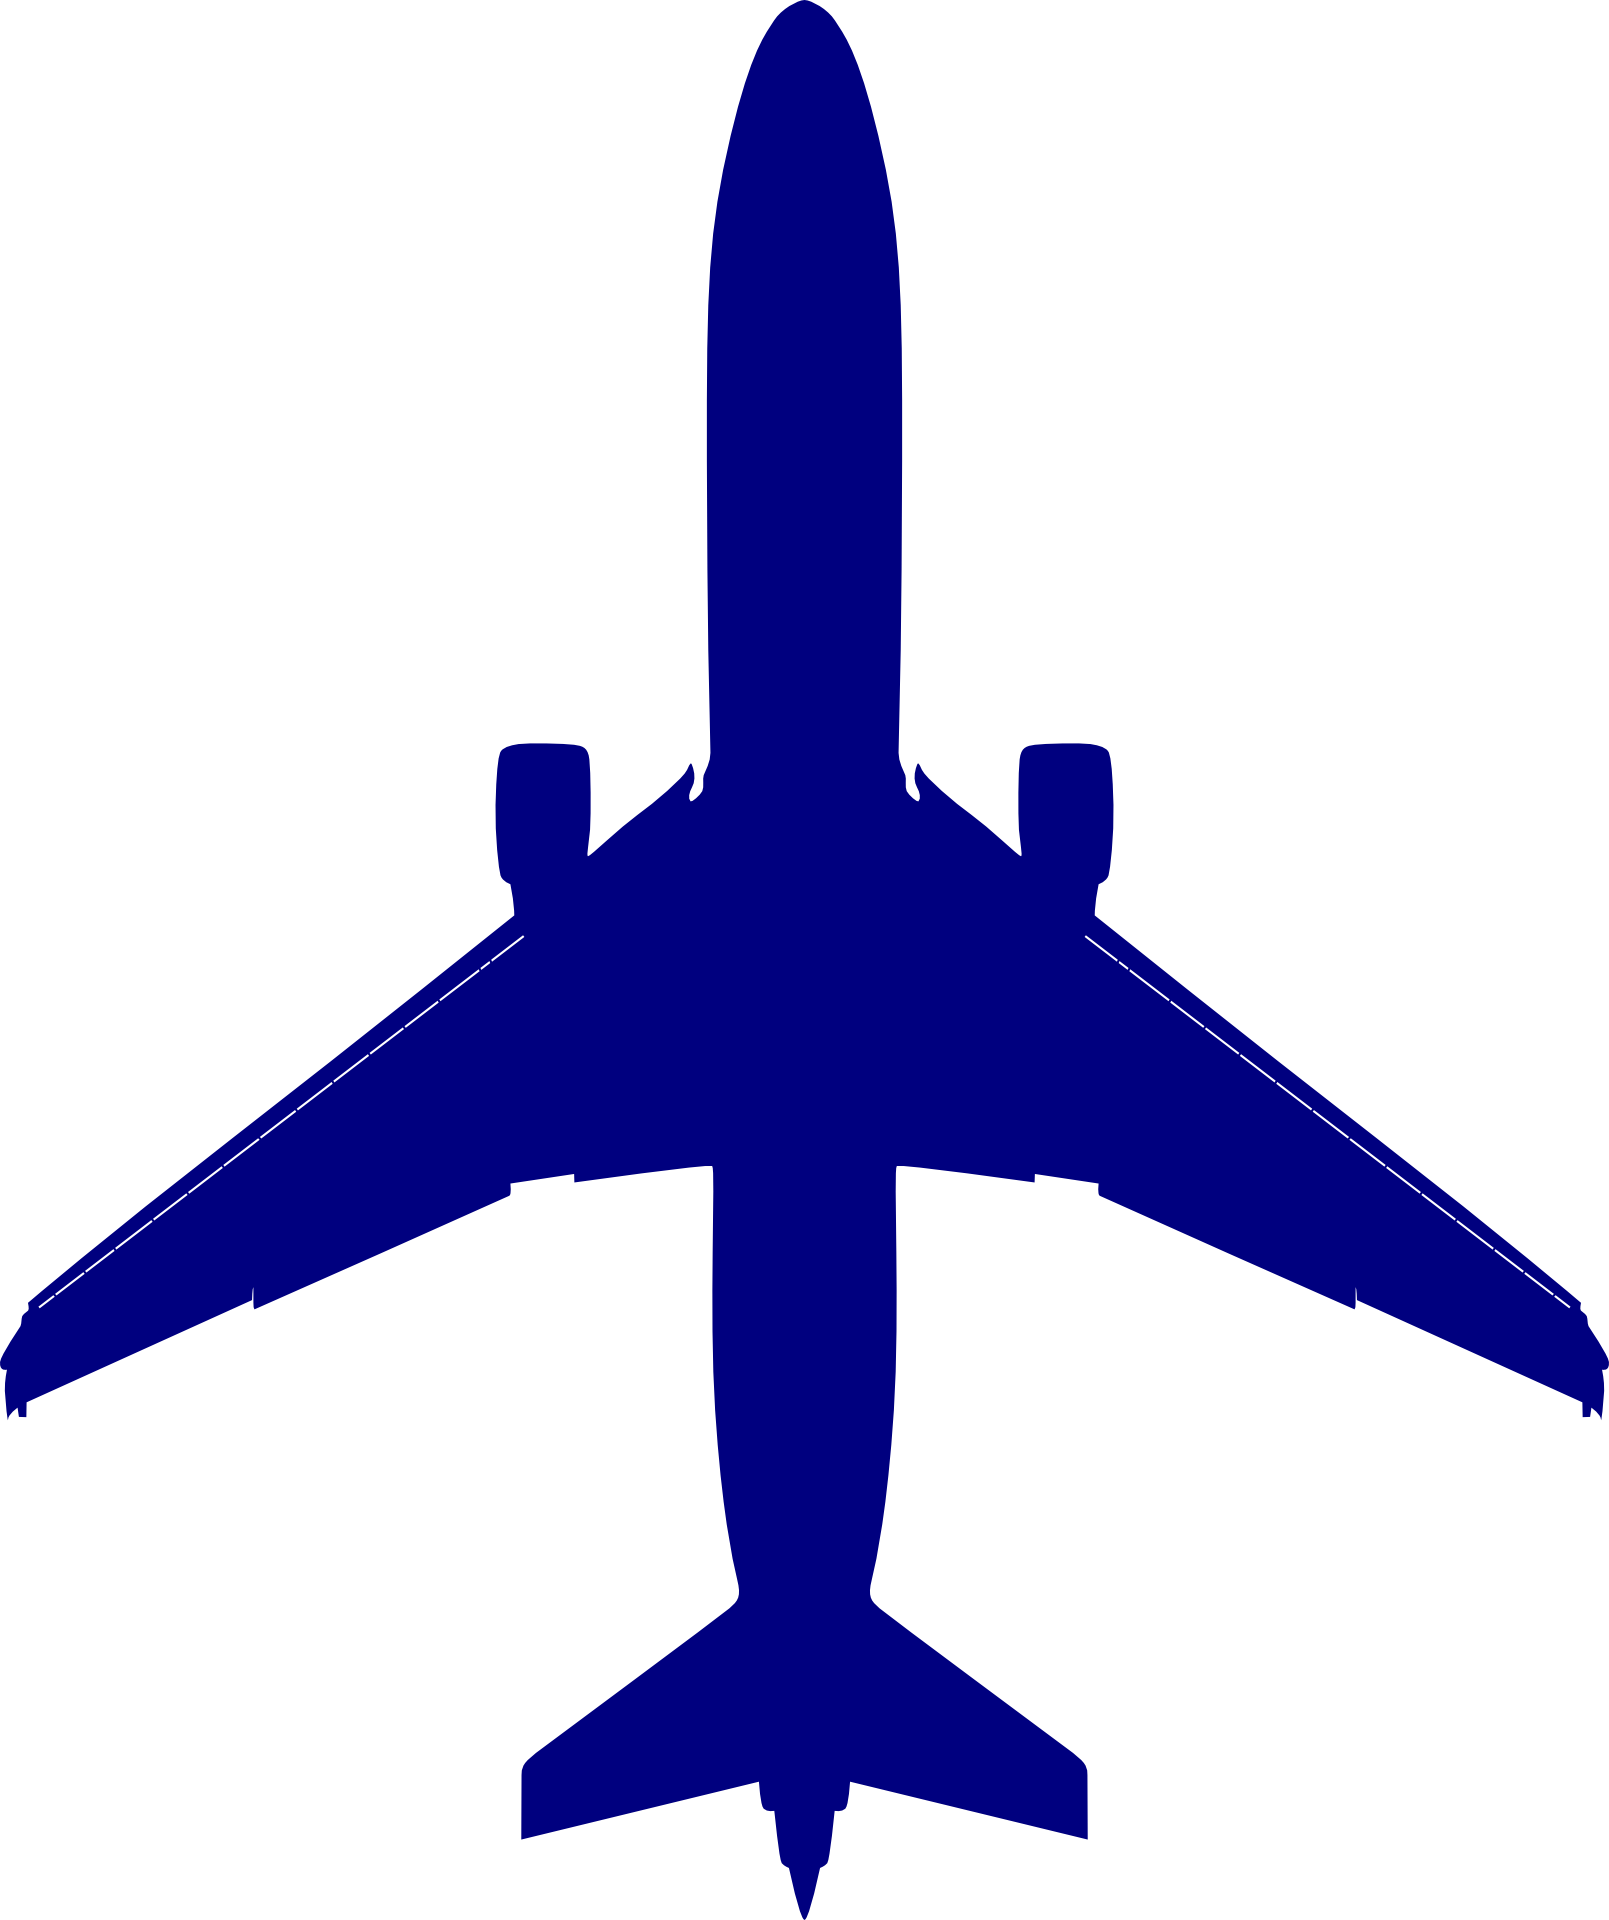 Blue Airplane Clipart Free Image